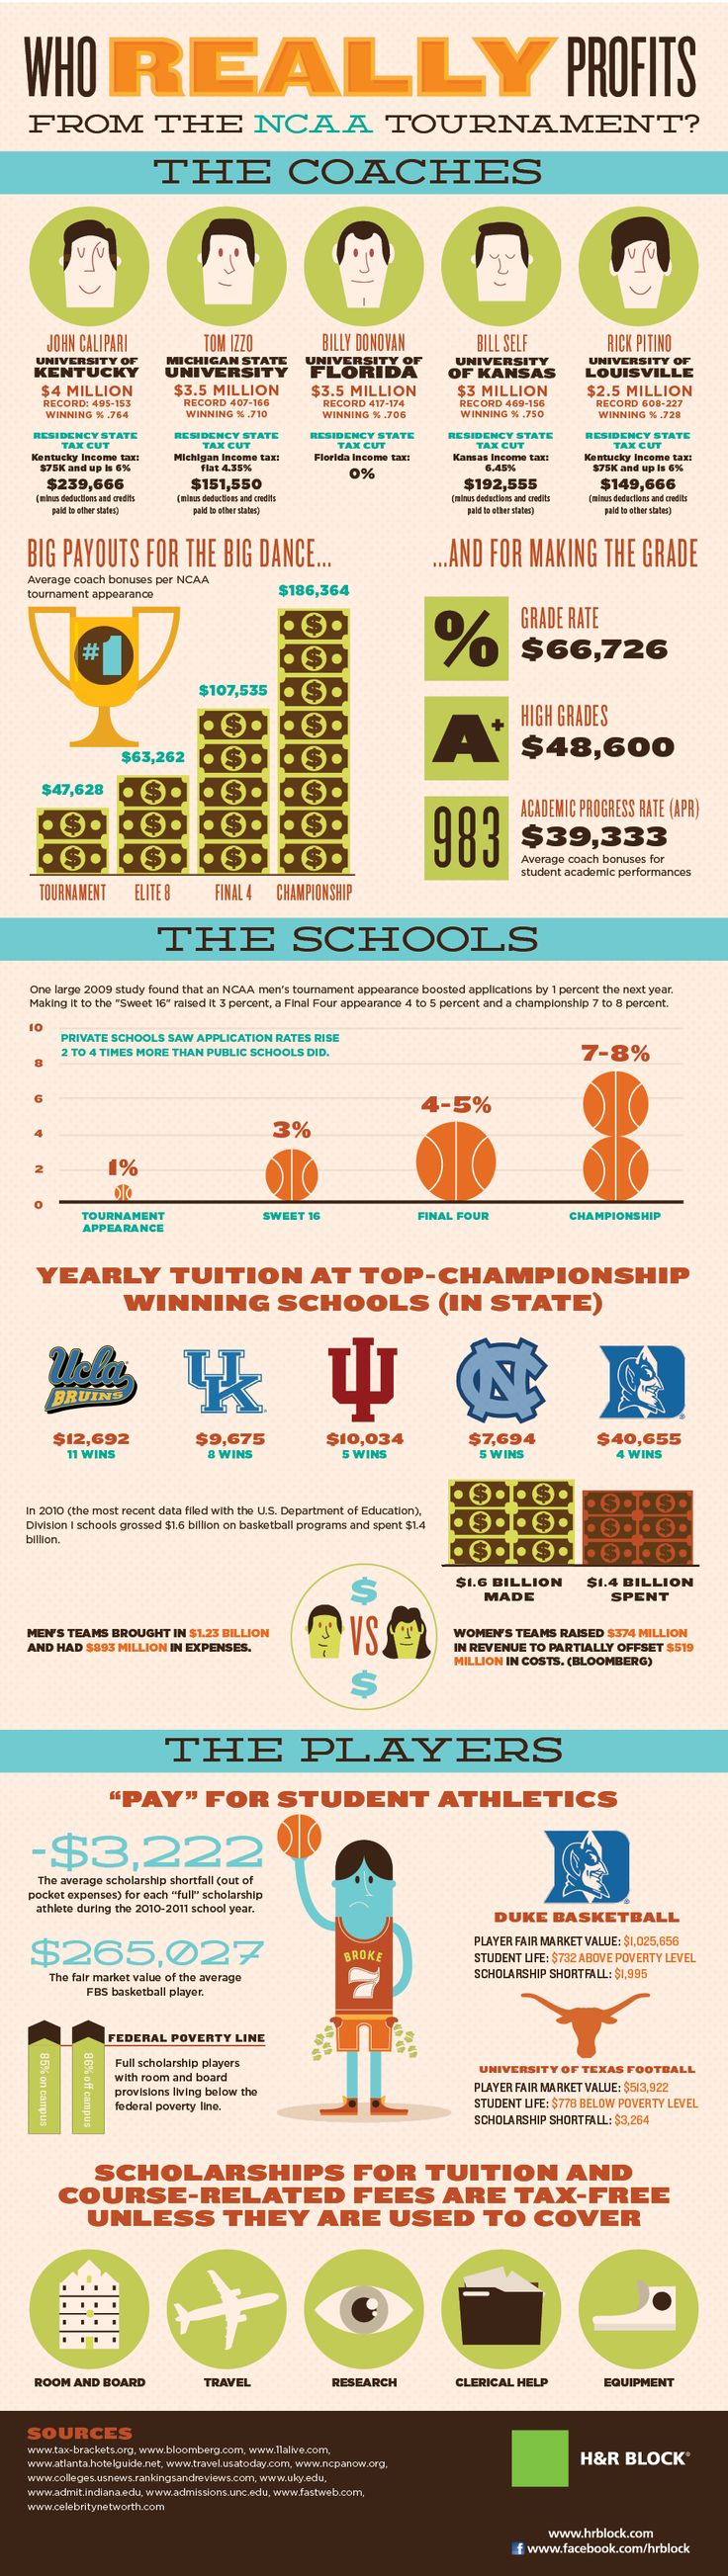 INFOGRAPHIC: Who Really Profits From The NCAA Basketball Tournament?